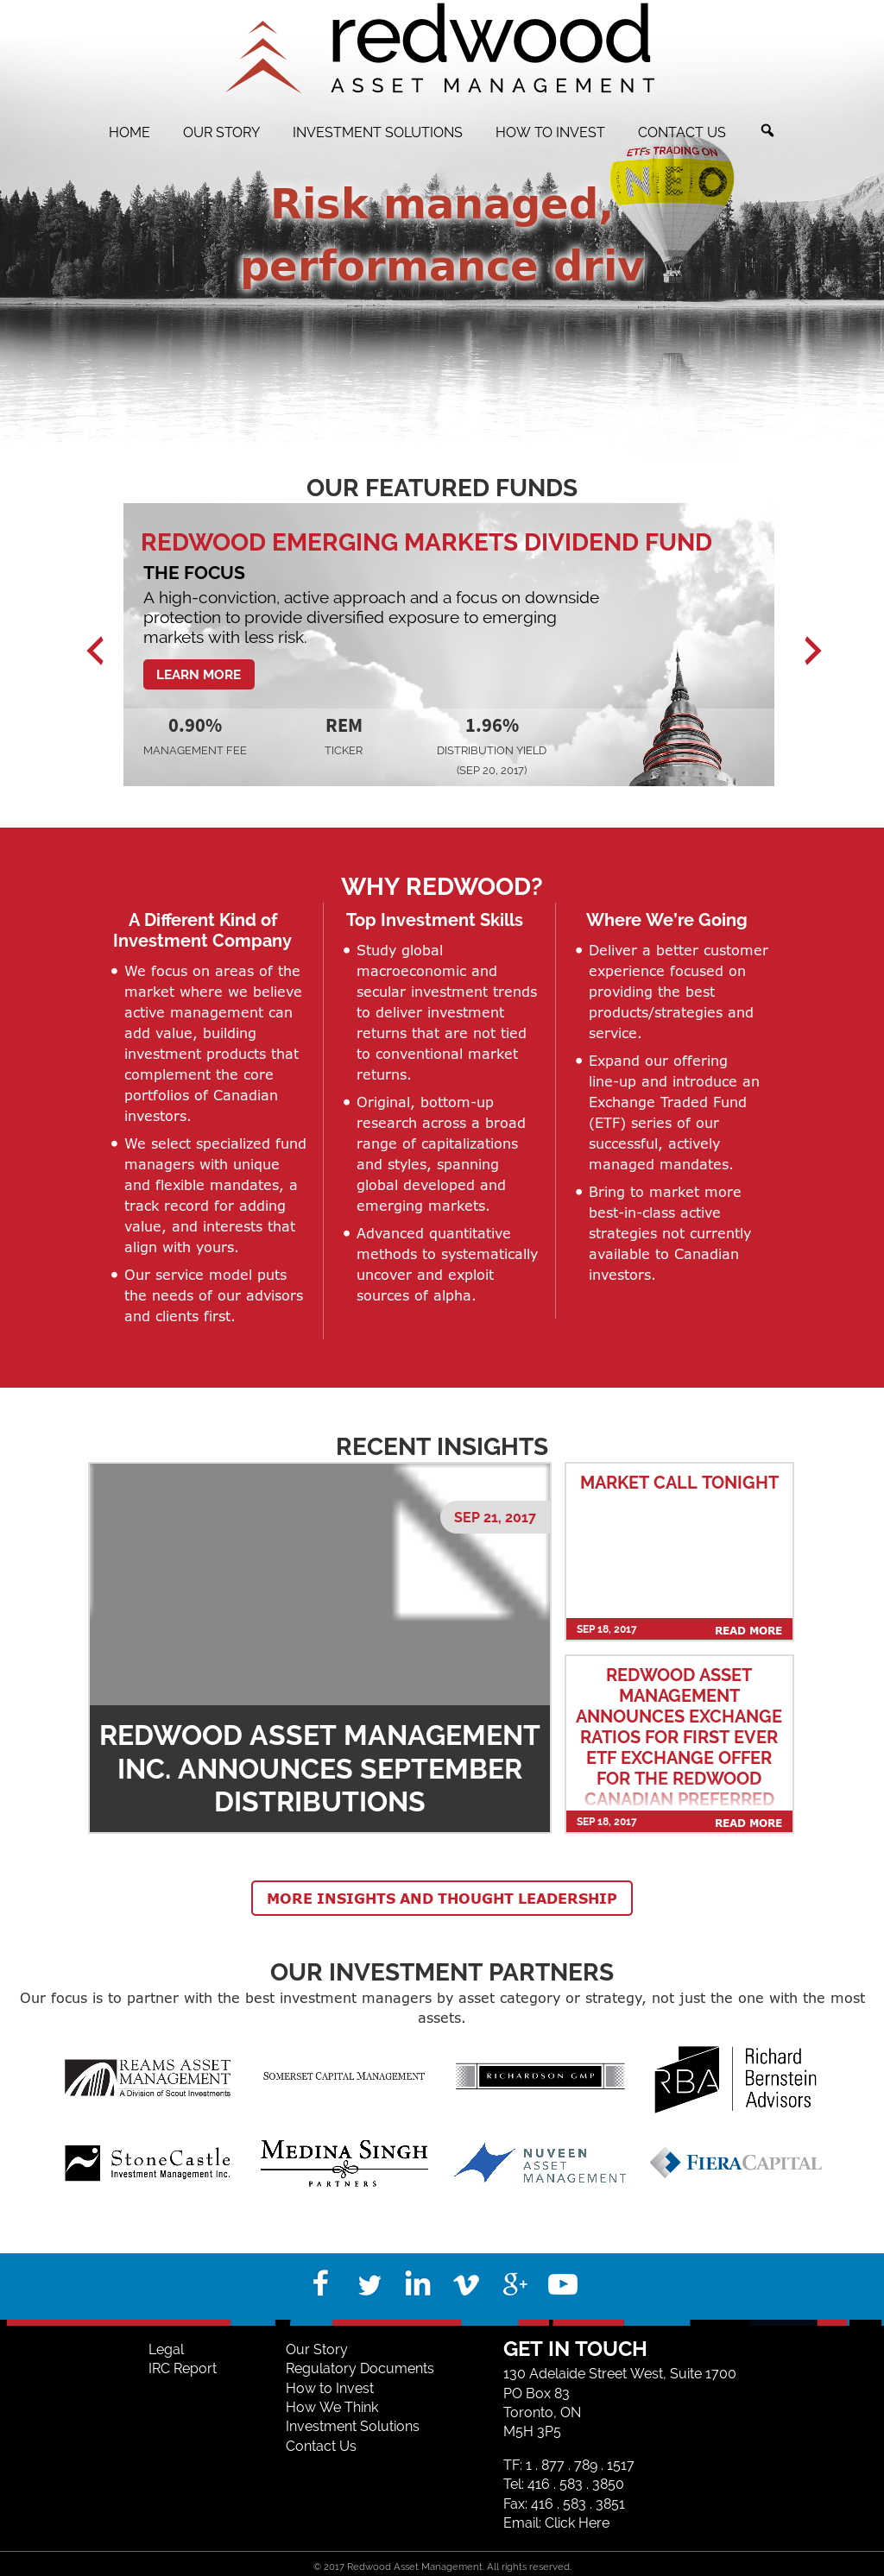 Redwood Asset Management Competitors, Revenue and Employees